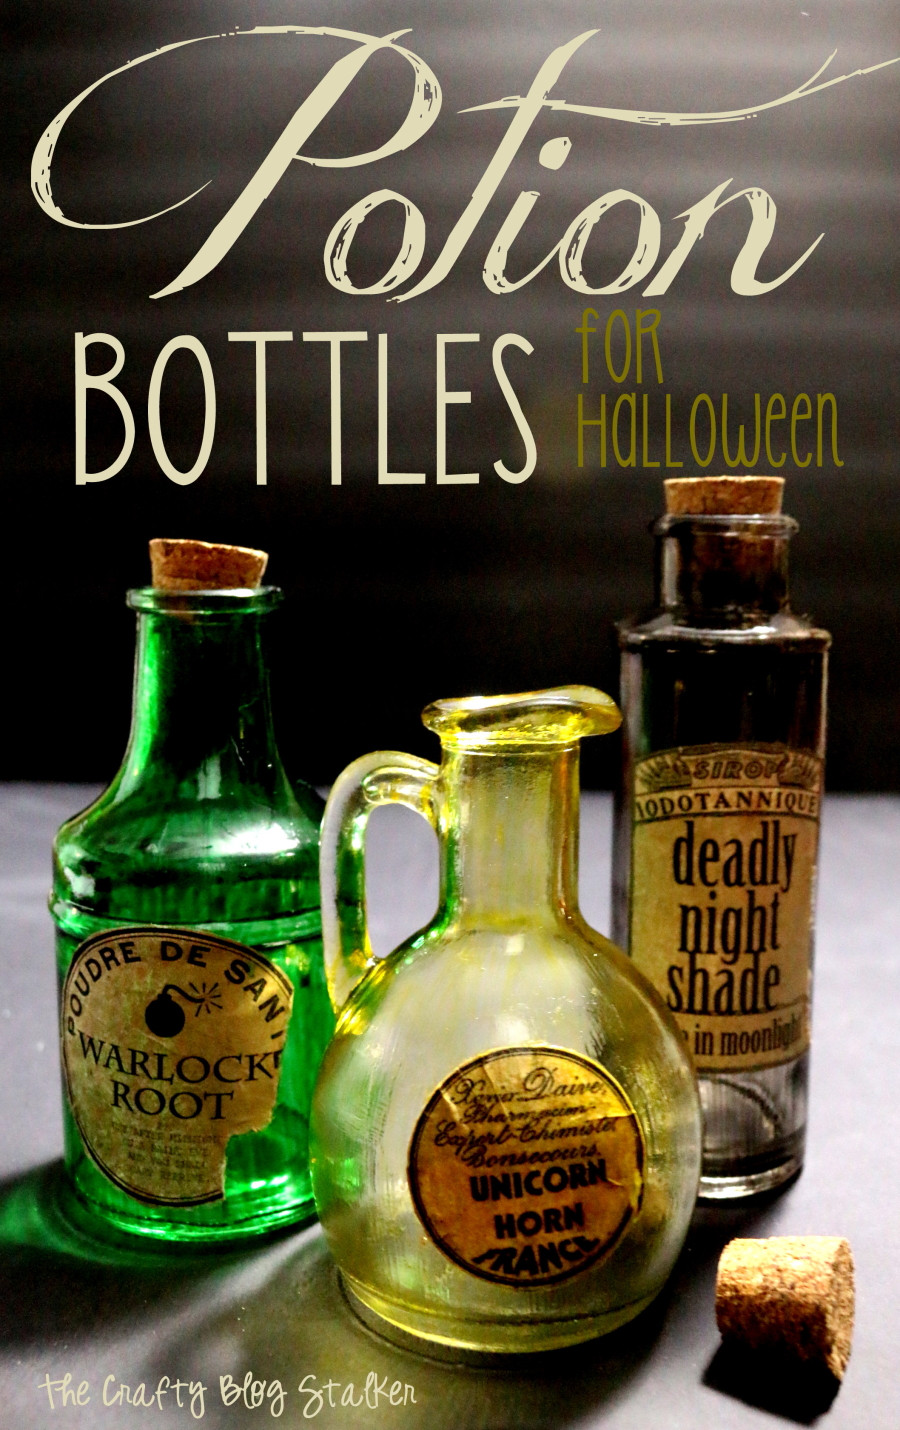 Best ideas about DIY Potion Bottles . Save or Pin Potion Bottles for Halloween The Crafty Blog Stalker Now.